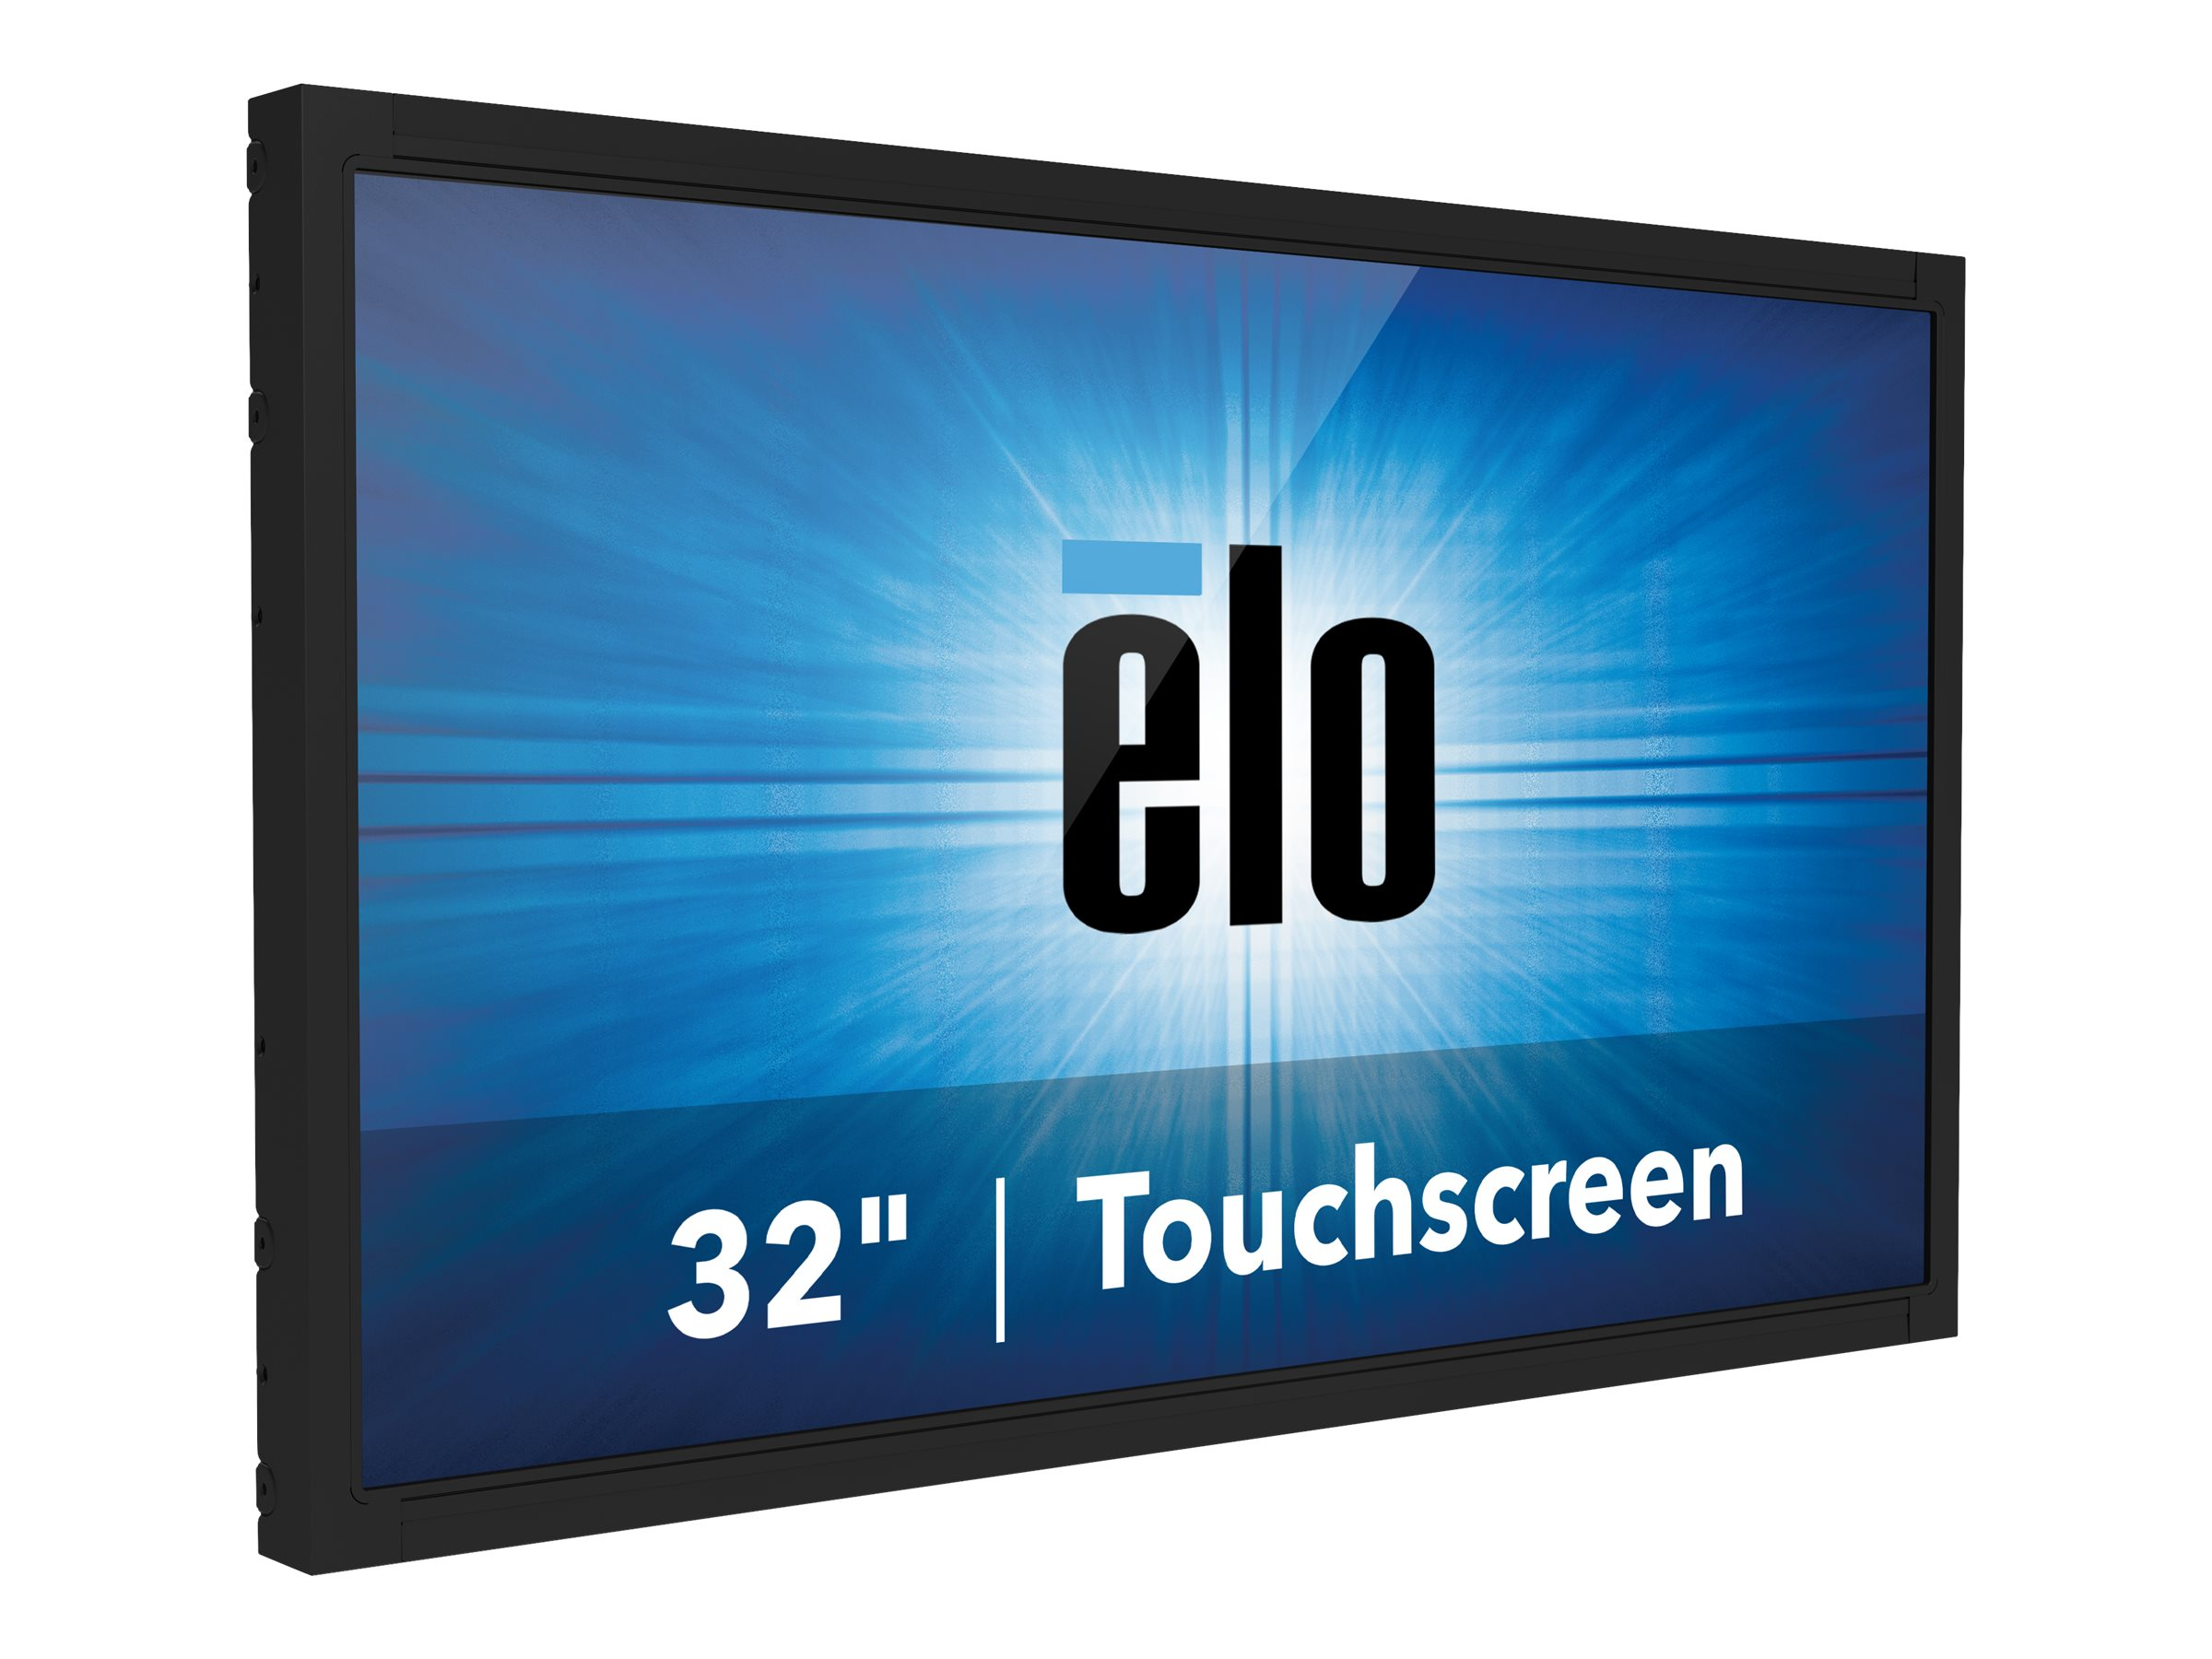 "Elo 3243L IntelliTouch Dual Touch - Écran LED - 32"" (31.5"" visualisable) - cadre ouvert - écran tactile - 1920 x 1080 Full HD (1080p) - 500 cd/m² - 3000:1 - 8 ms - HDMI, DVI-D, VGA - noir"